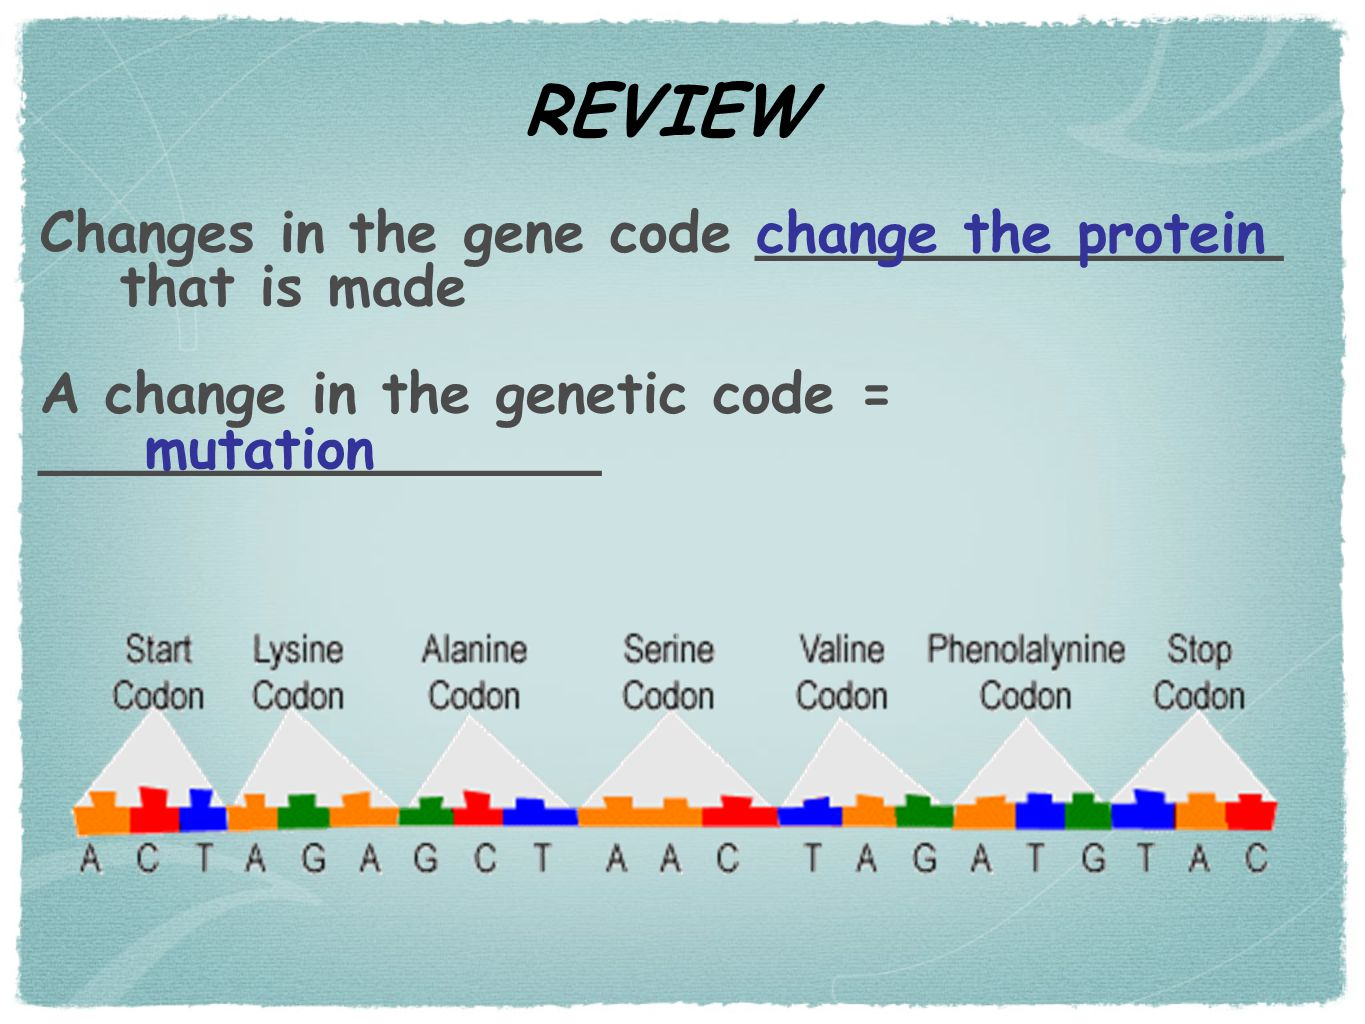 Changes in the gene code _______________ that is made A change in the genetic code = ________________ mutation change the protein REVIEW